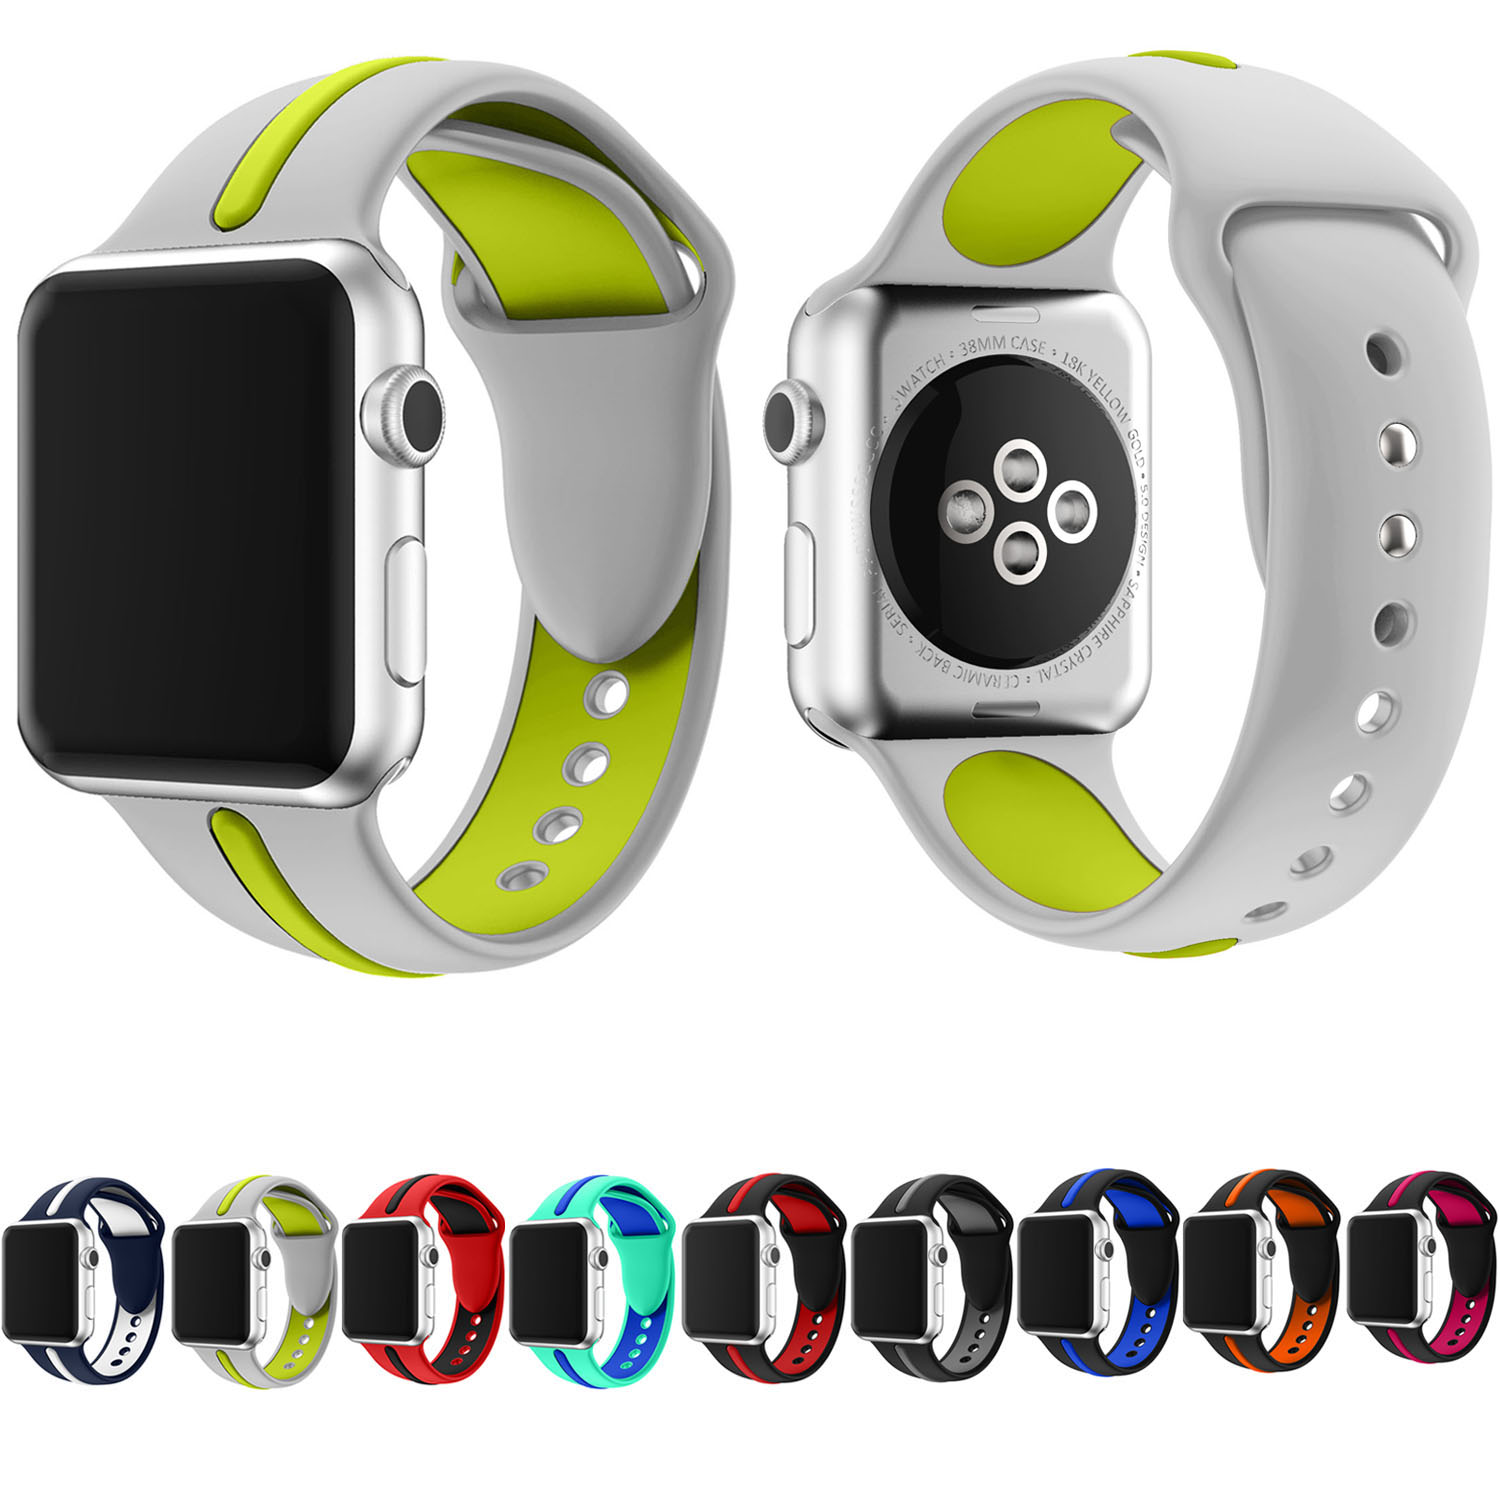 New Arrival Dual Colors Sport Silicone Band for Apple Watch 42mm 38mm Strap Replacement Bracelet for iWatch 3/2/1 Wristbands